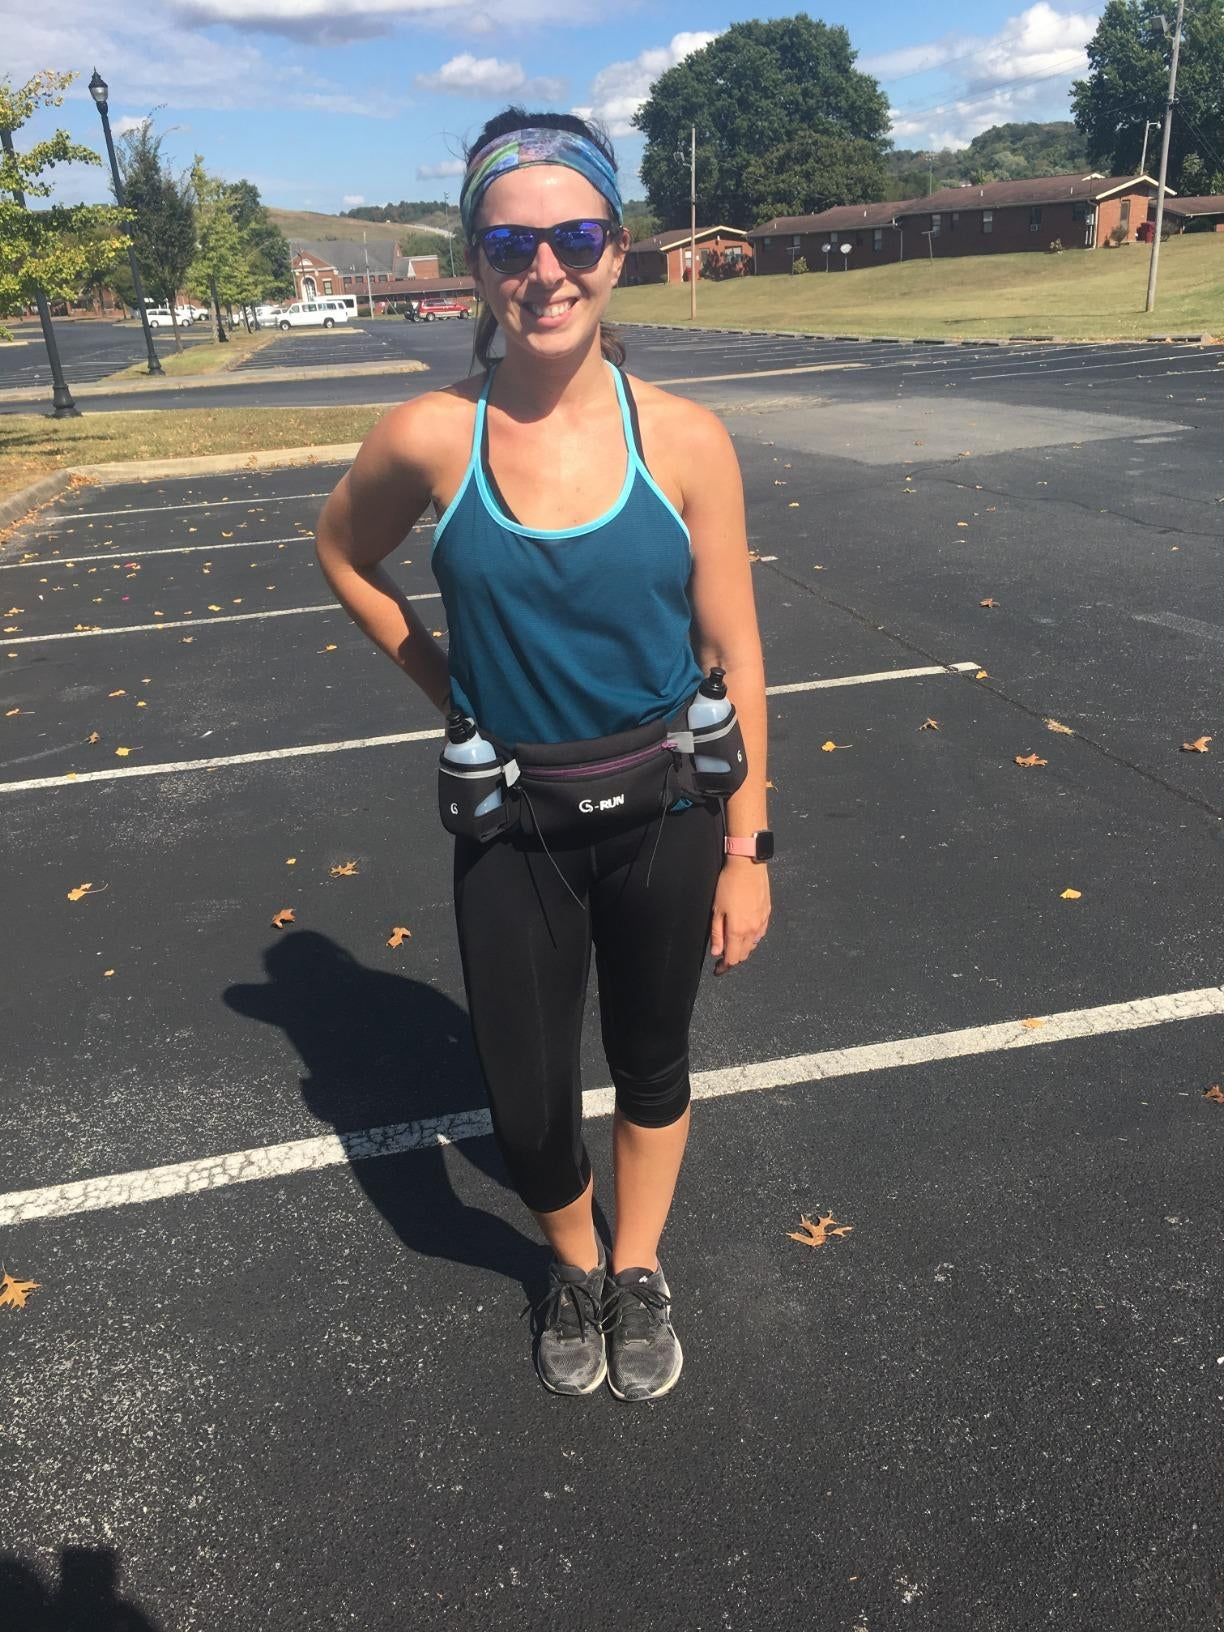 Reviewer wears black hydration belt while training for a marathon